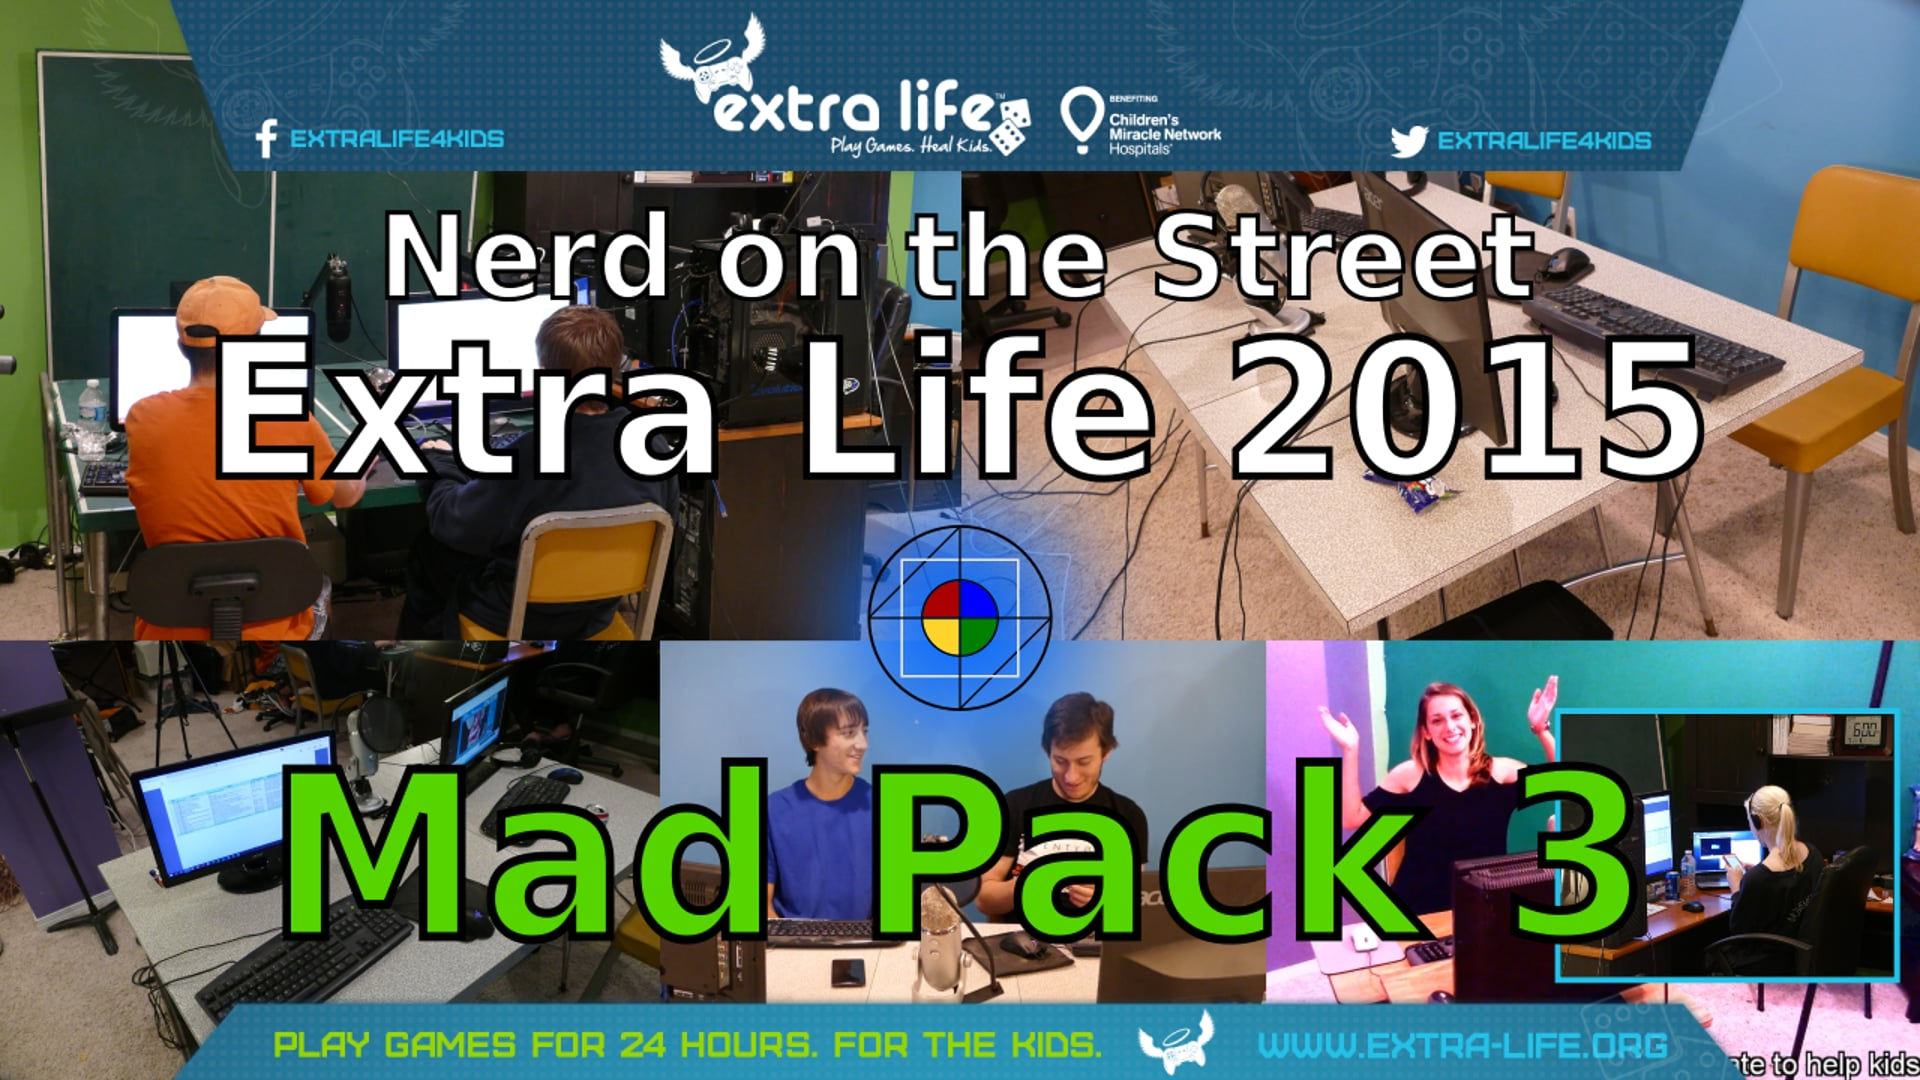 Mad Pack 3 - Extra Life 2015